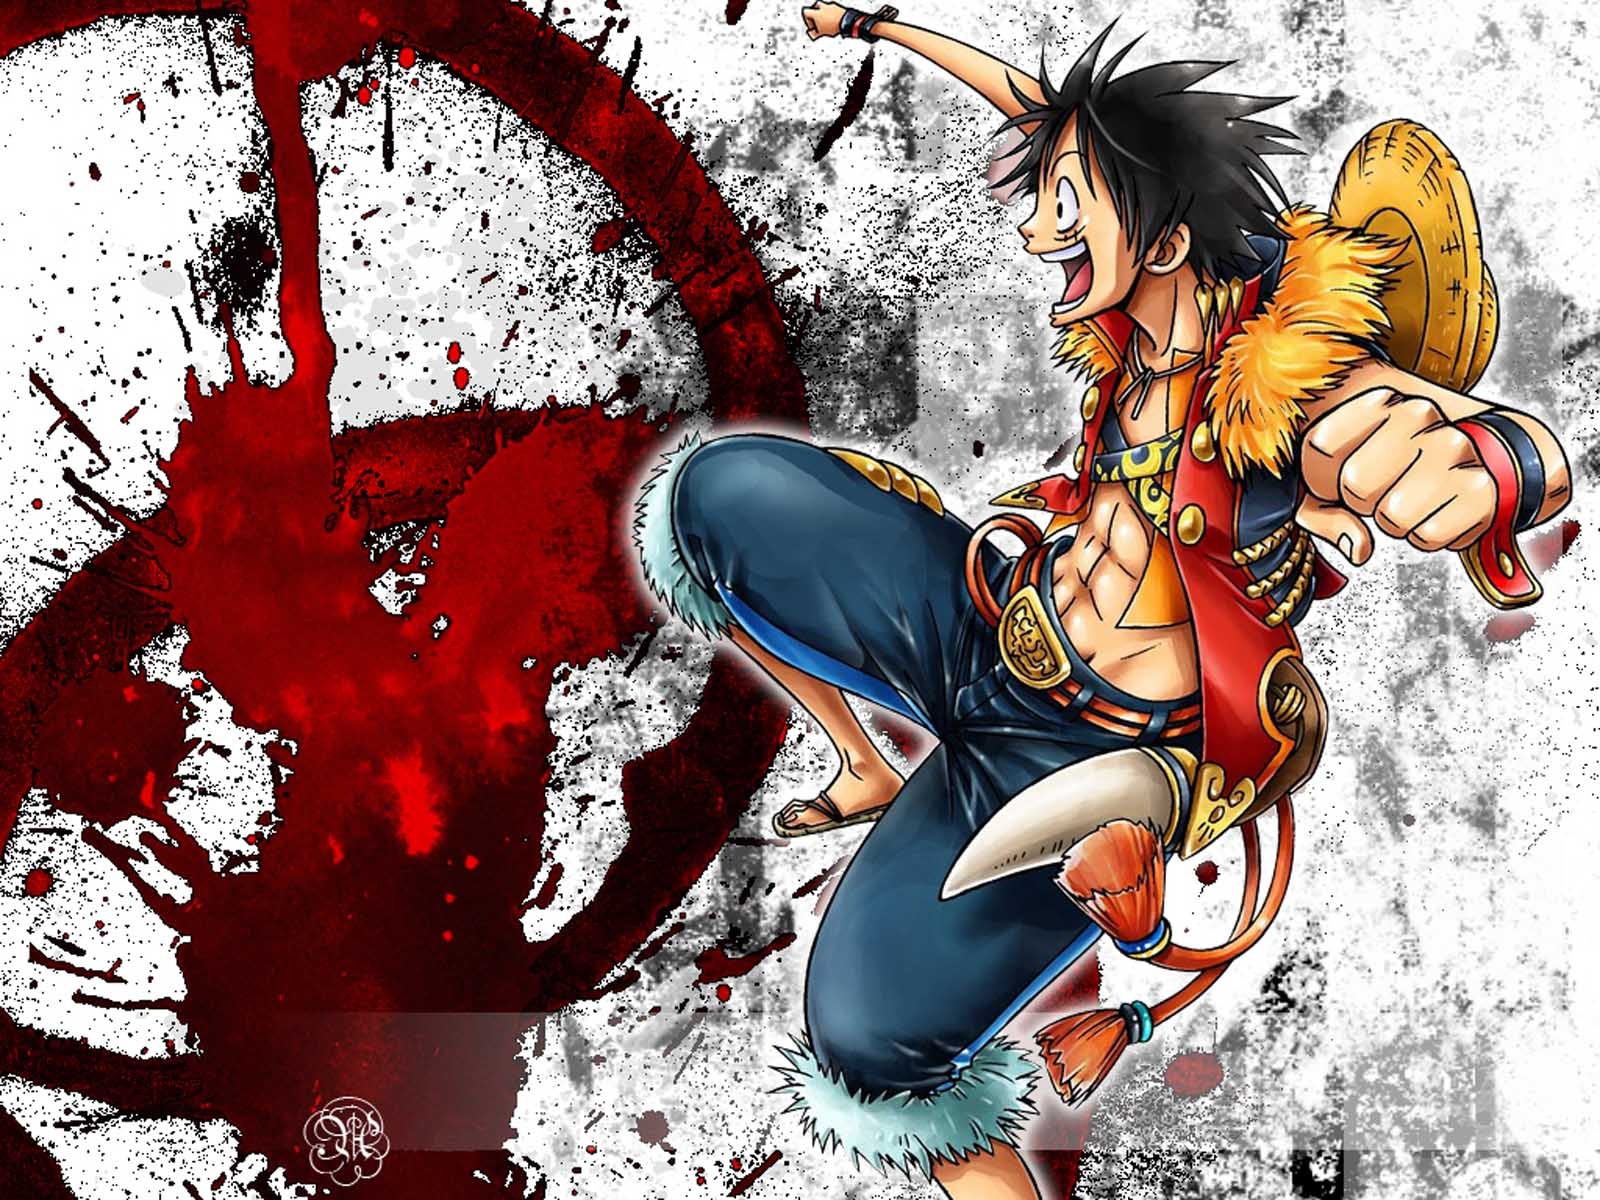 Anime Wallpaper One Piece Luffy